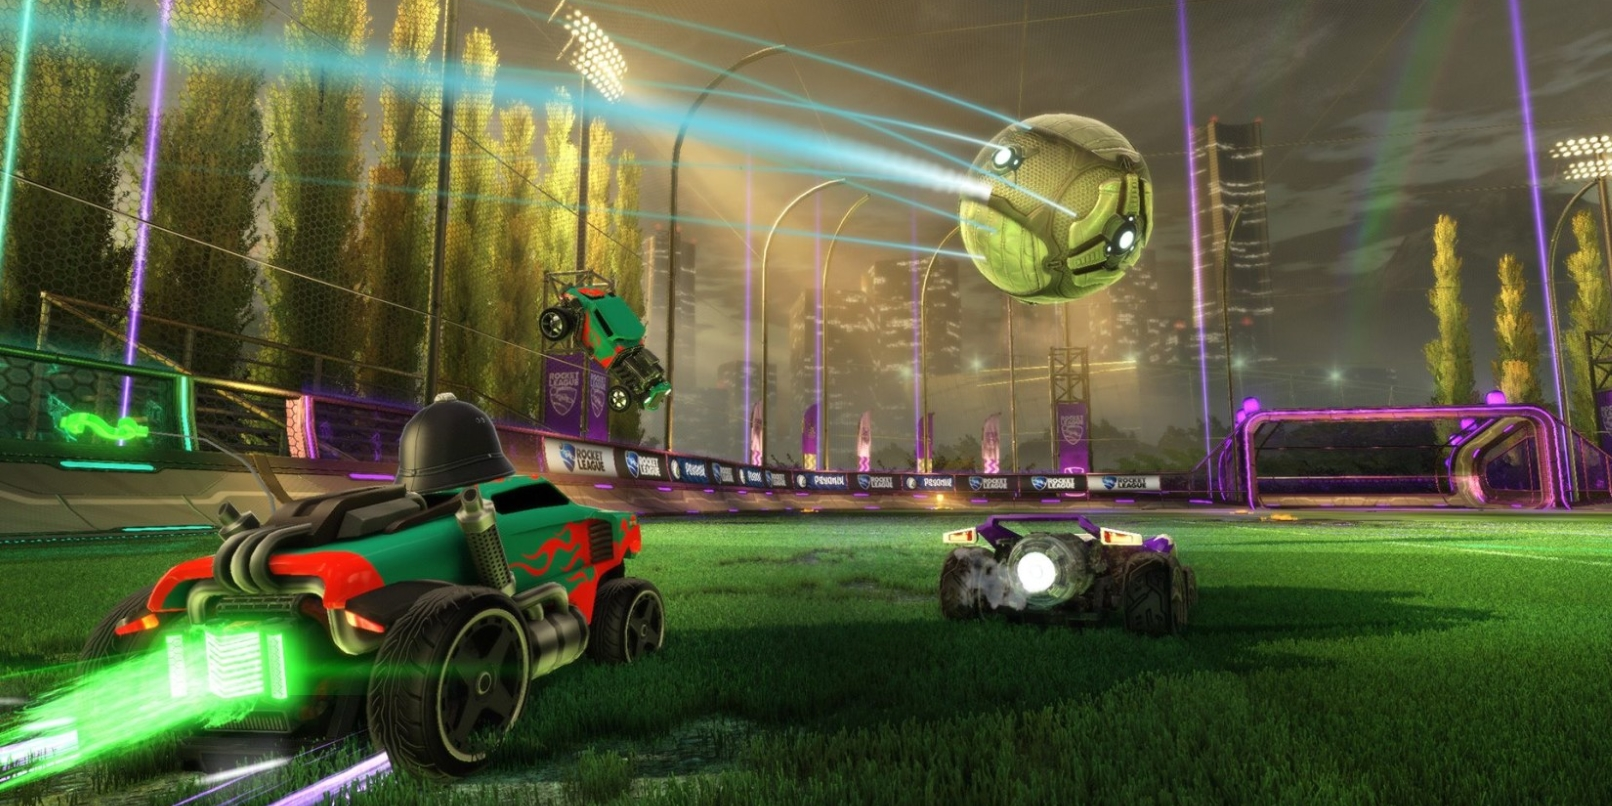 Developers blame Sony for lack of PS4-Xbox cross-play